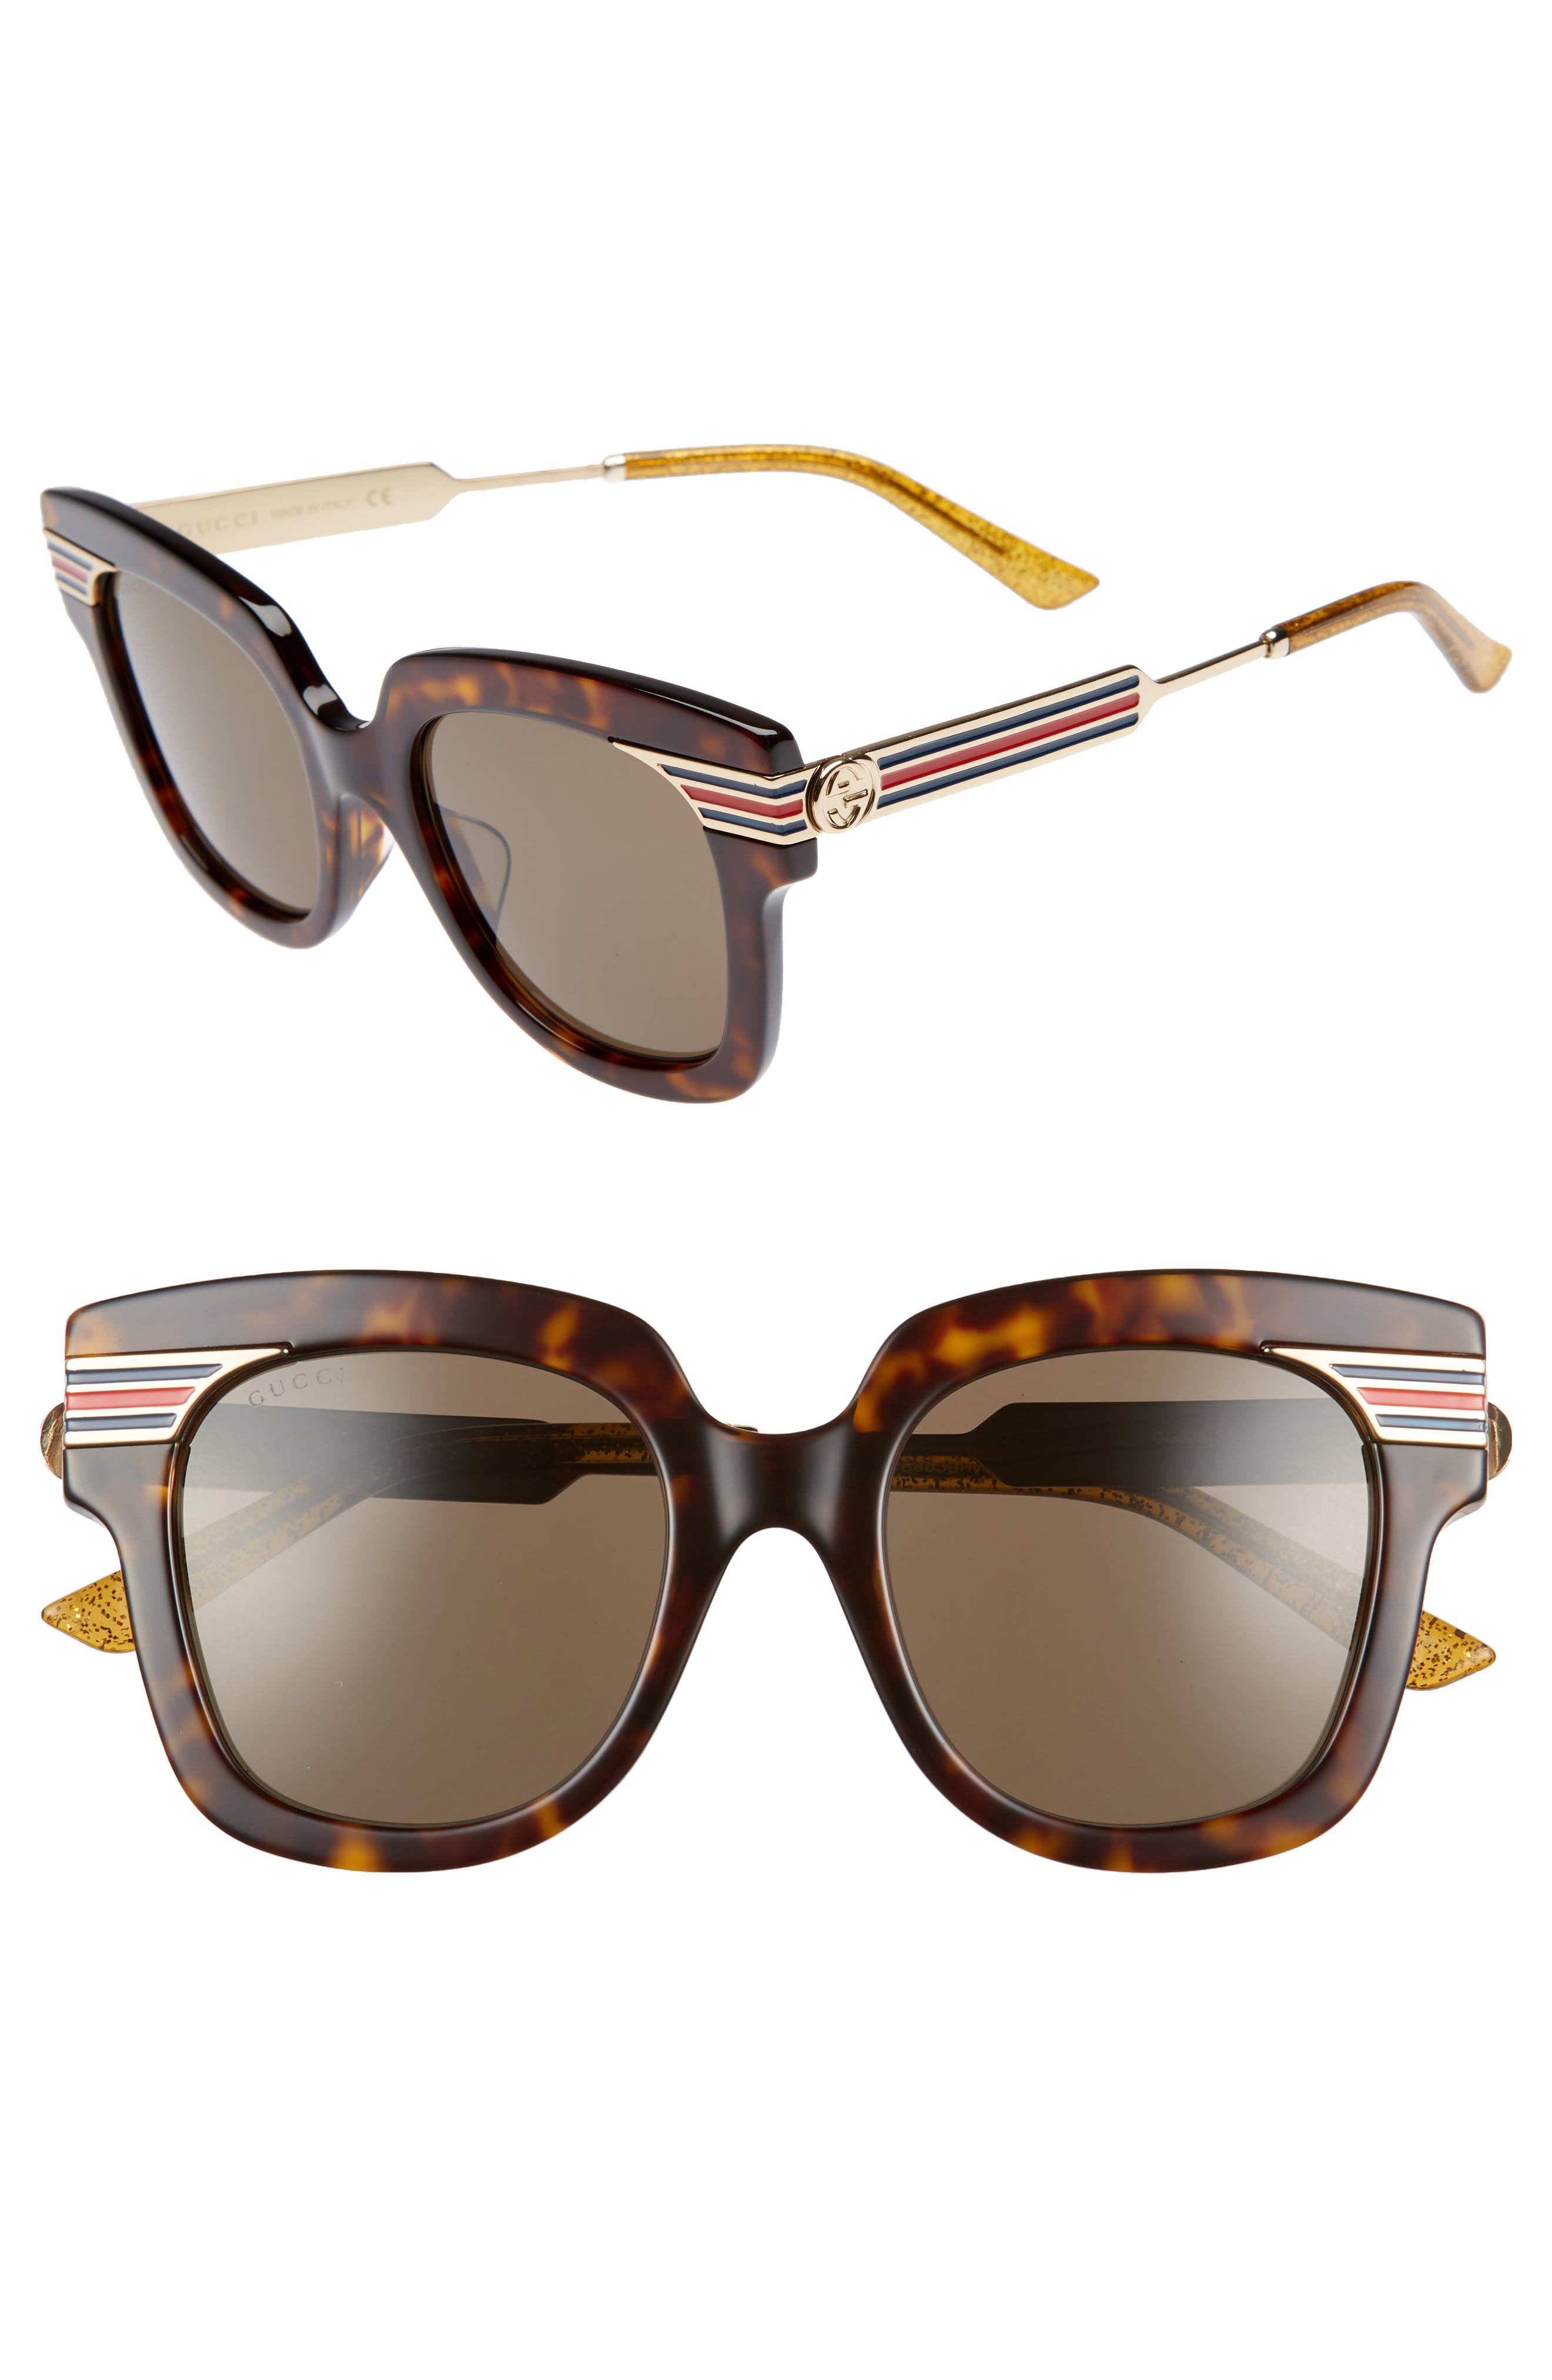 51mm Cat Eye Sunglasses,                         Main,                         color, DARK HAVANA/ GOLD